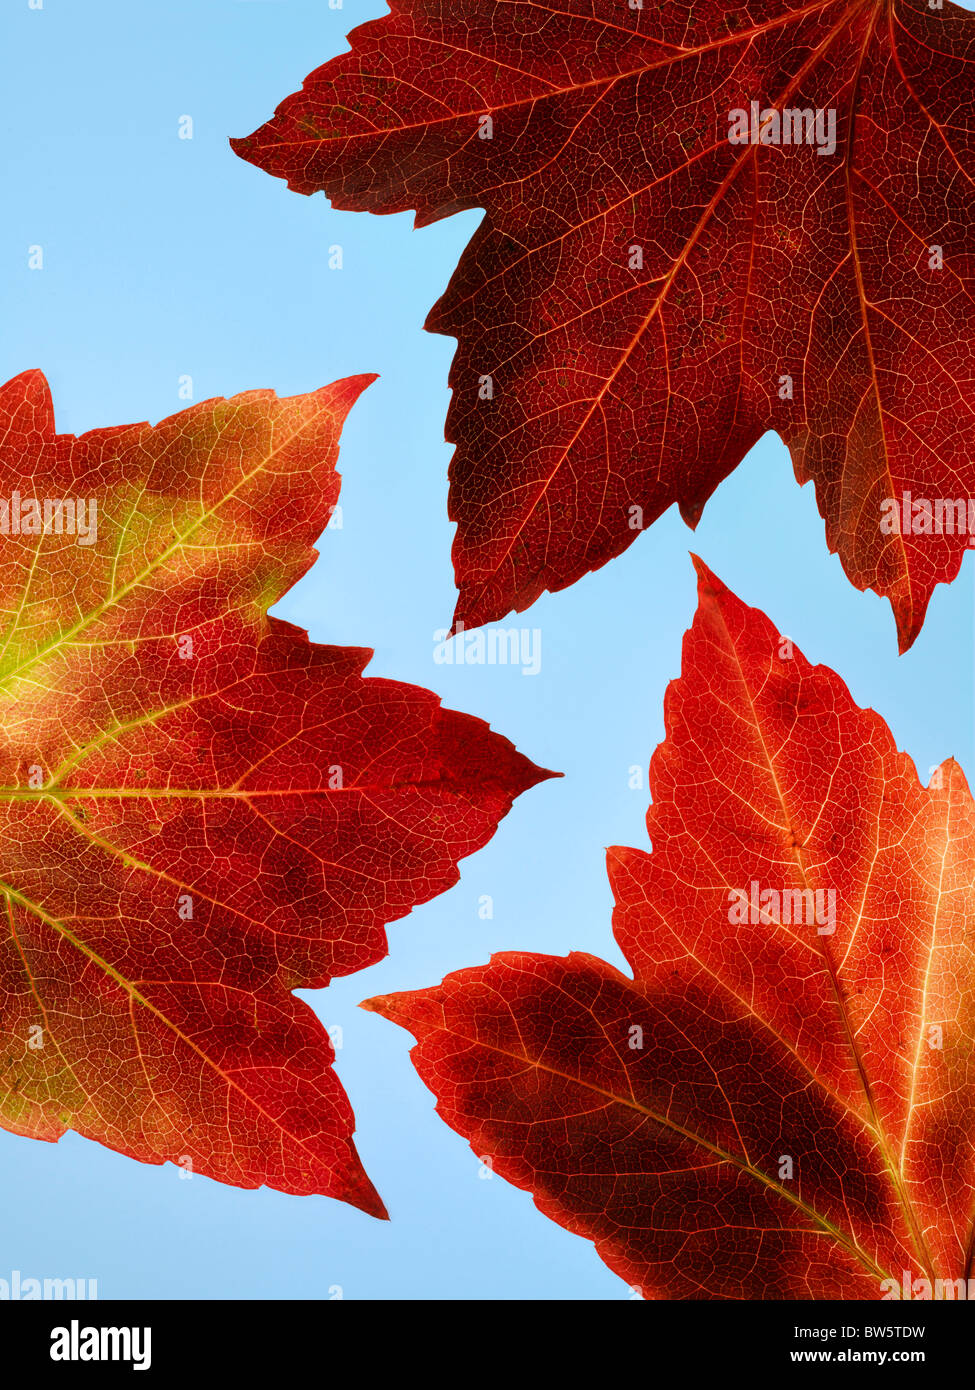 Close -up of three red and yellow Autumn vine leaves with blue sky beyond - Stock Image